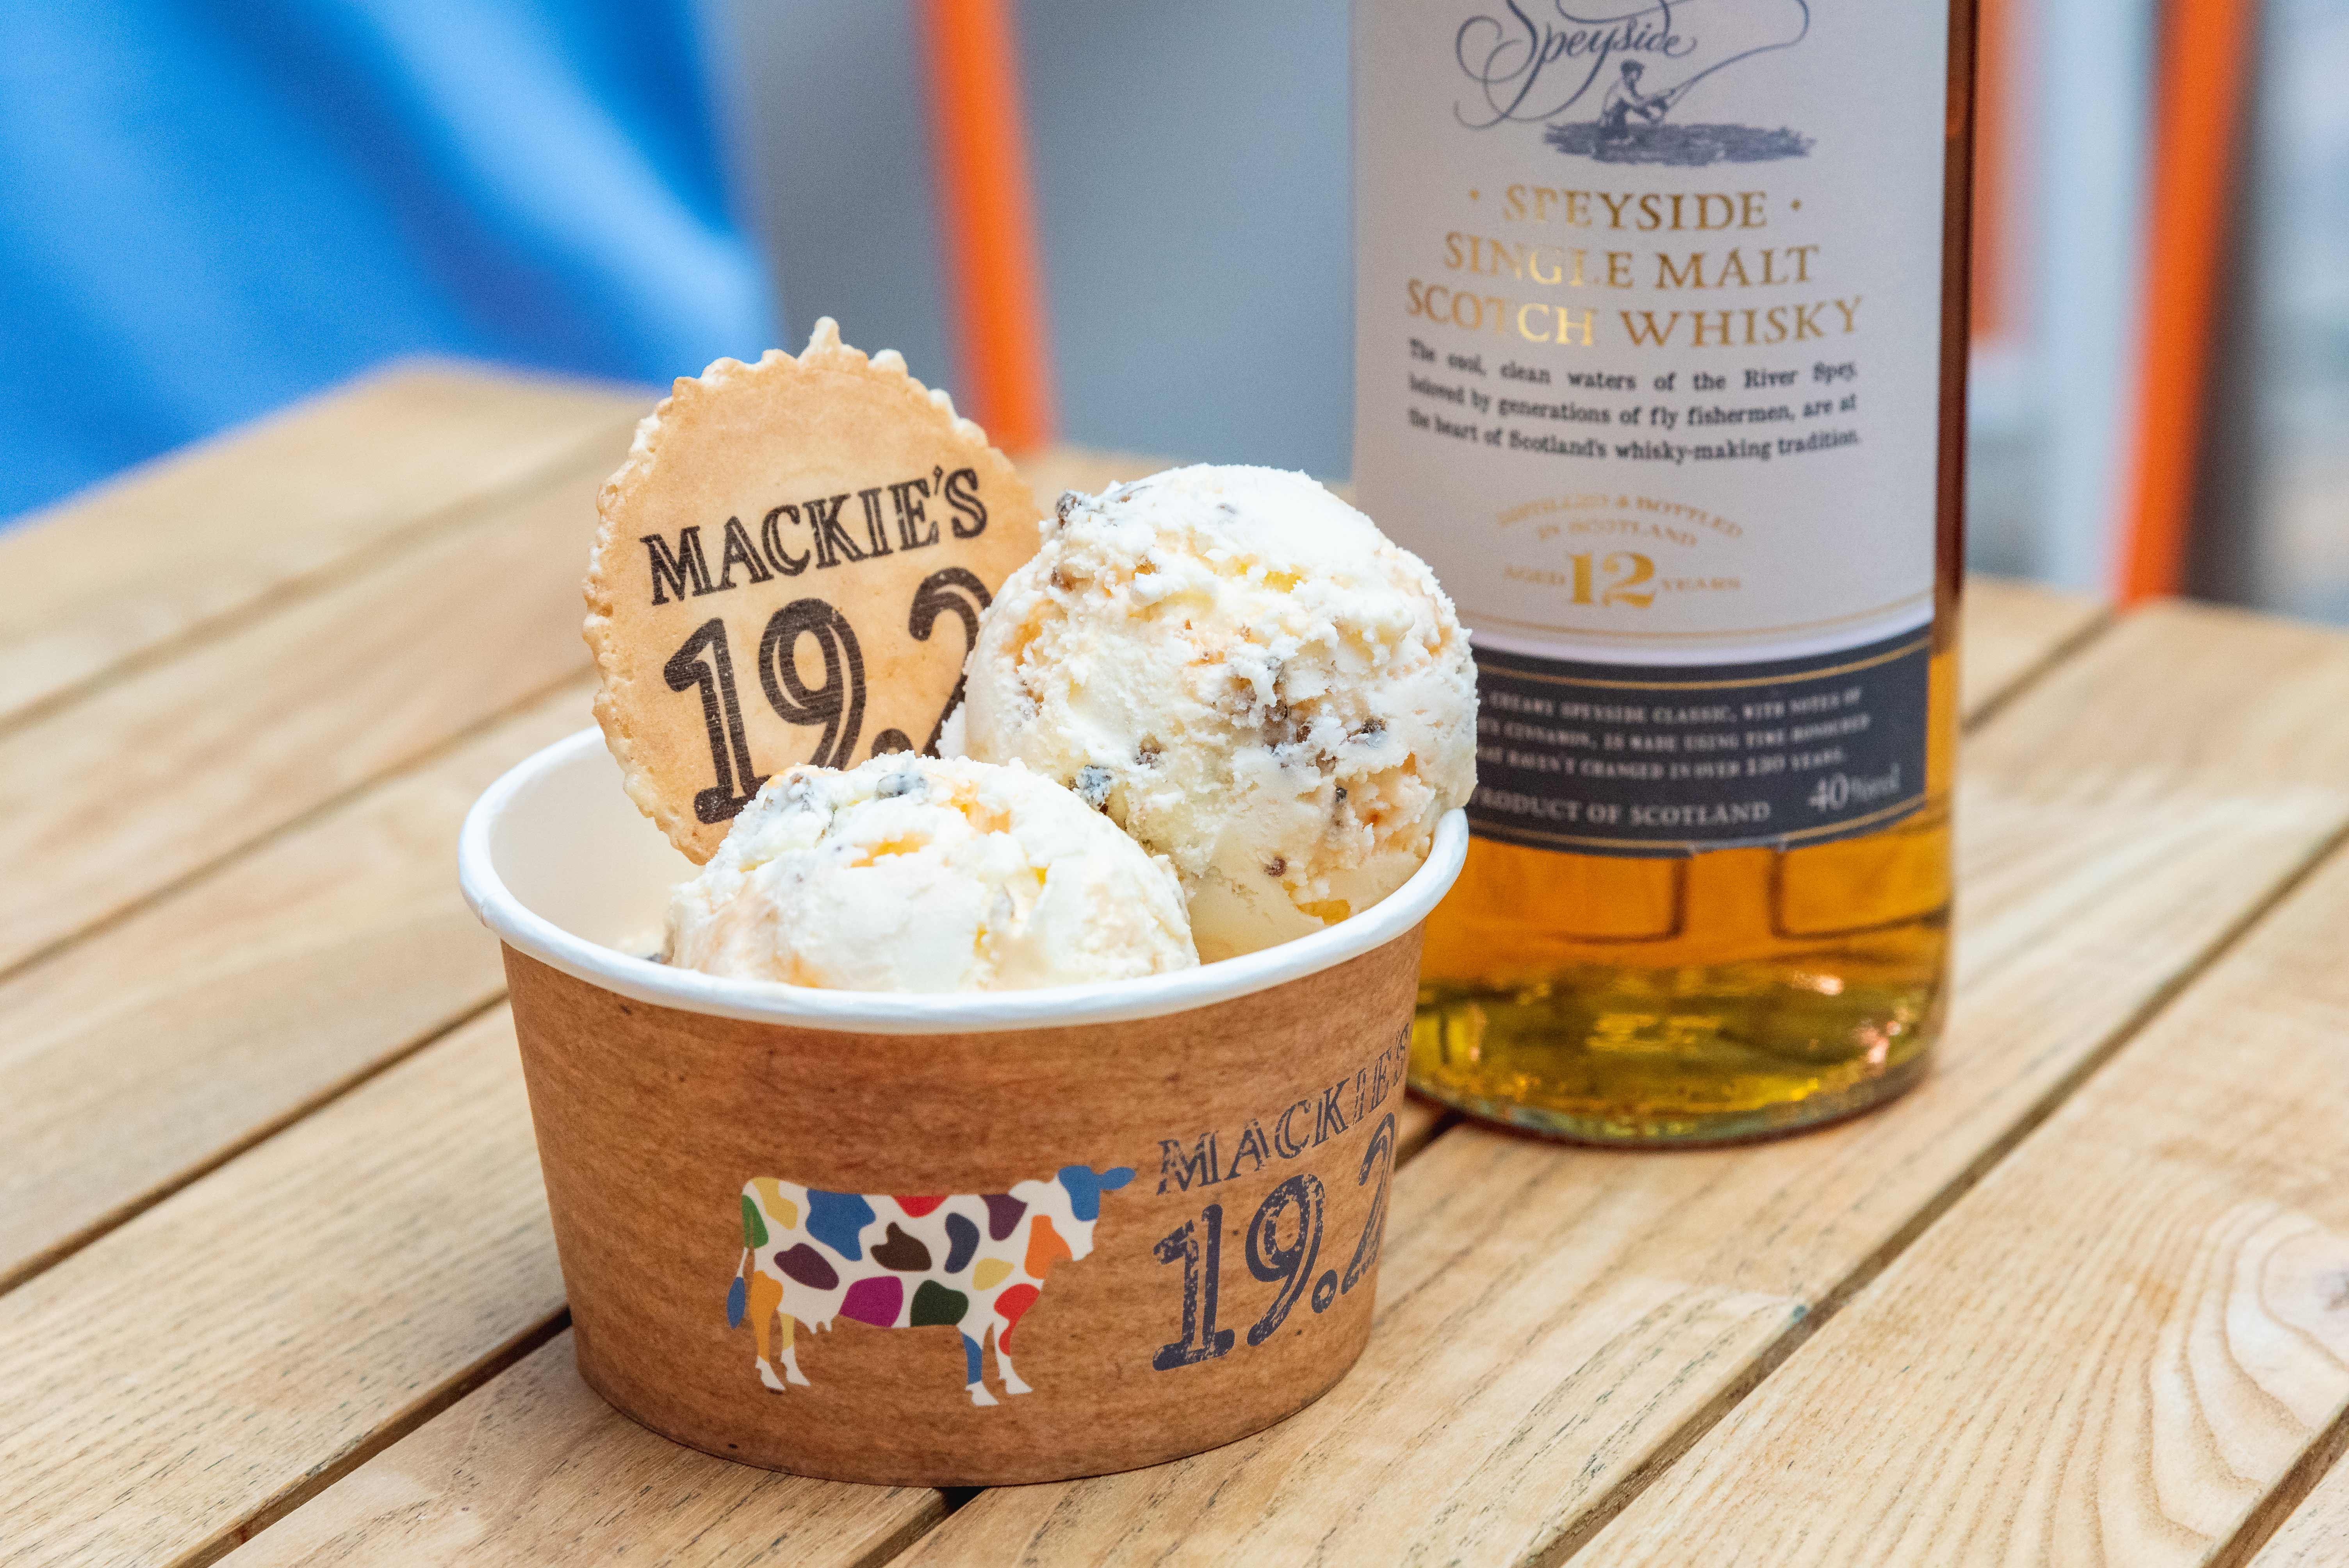 Serving tub of Mackie's 19.2's Haggis and Marmalade ice cream sat next to a bottle of whisky in a food and drink PR photo for Burns Night.